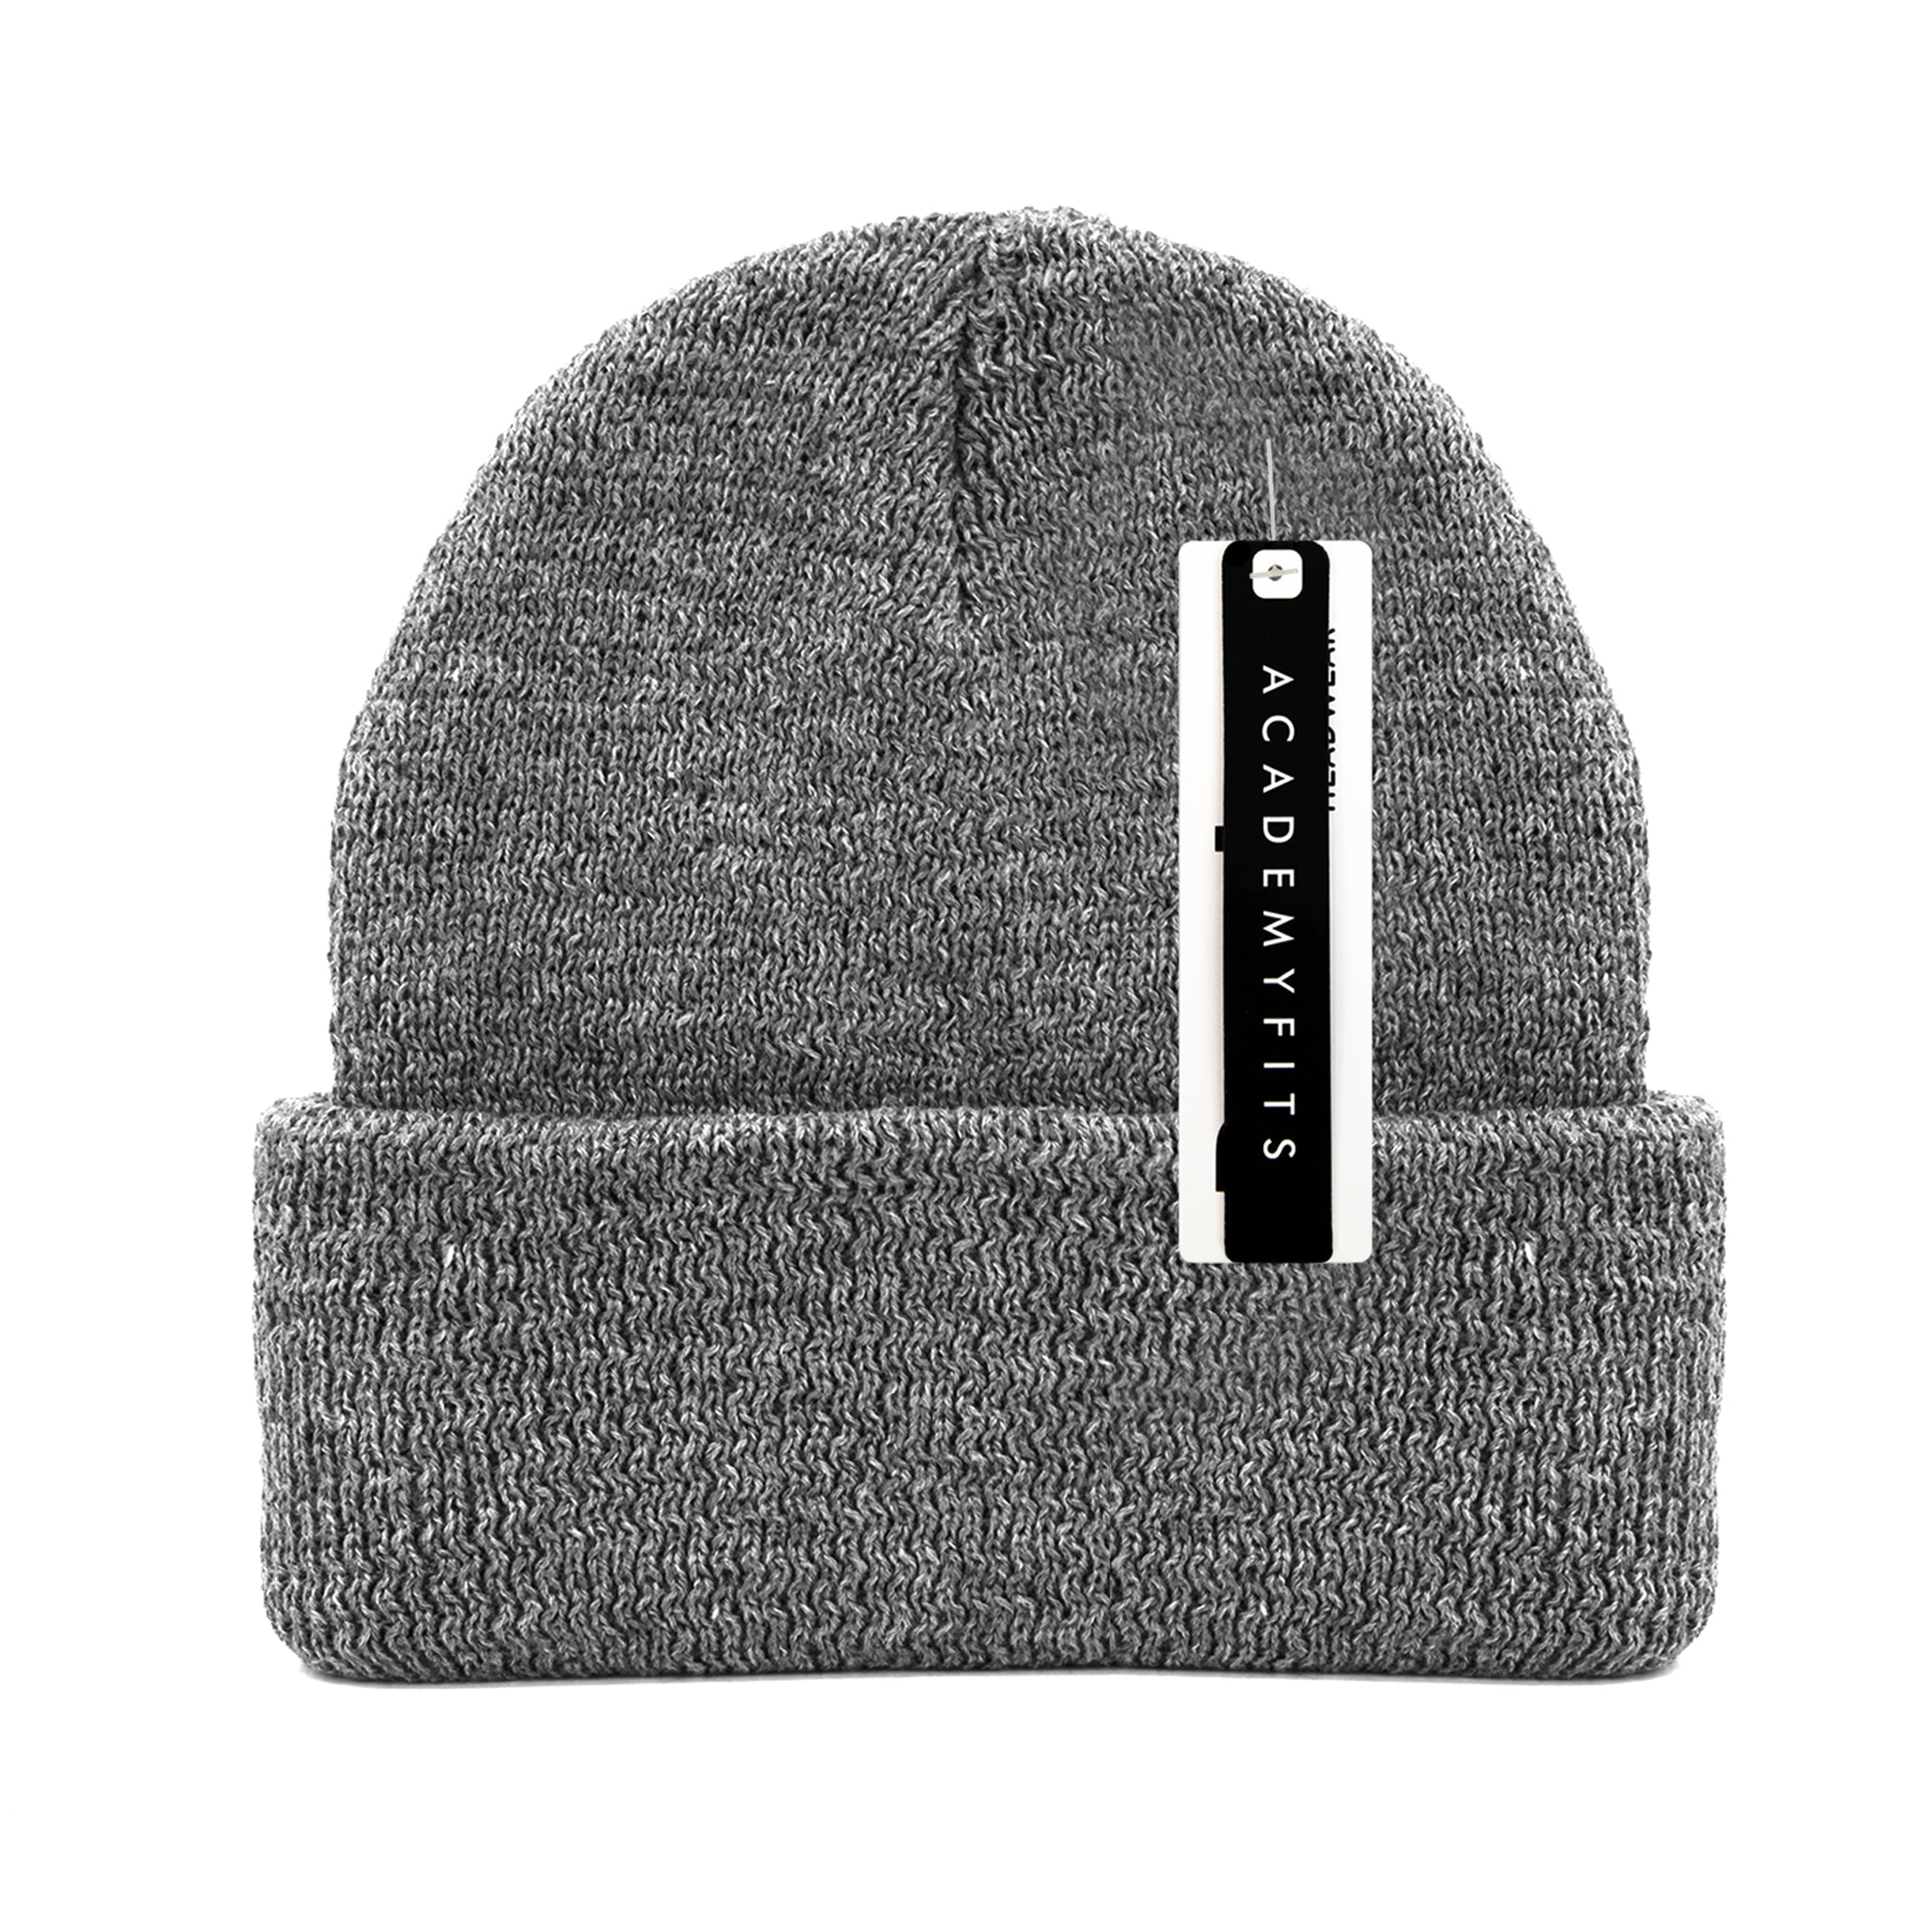 Premium Light Reflection Cuffed Beanie #6011LR